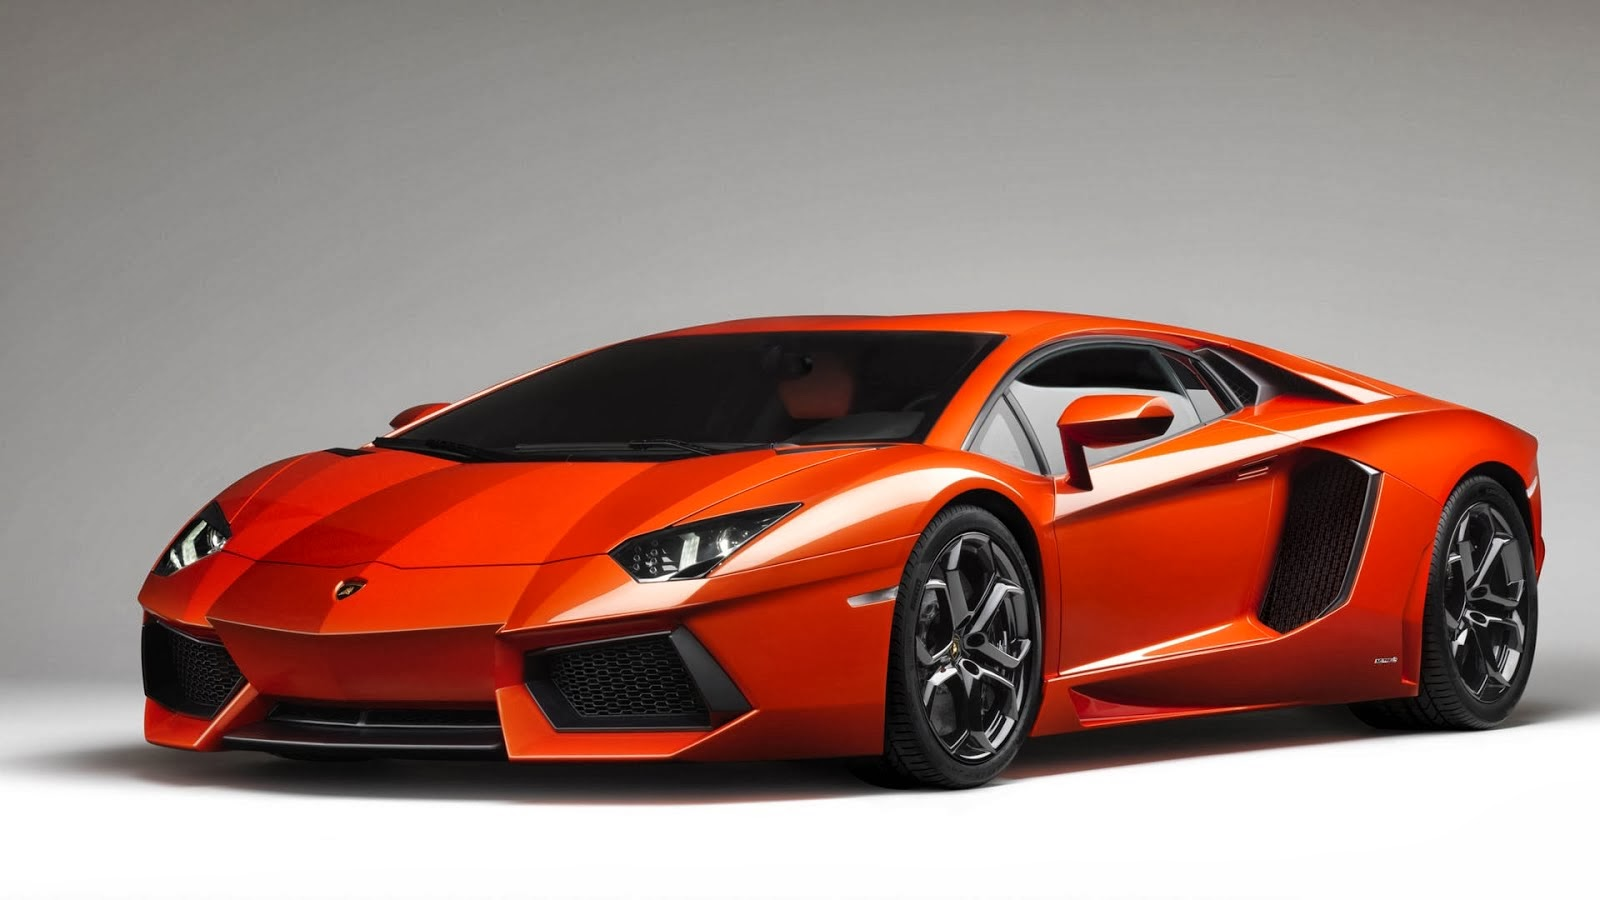 Orange Lamborghini Aventador: Orange Lamborghini Aventador Wallpaper For Android